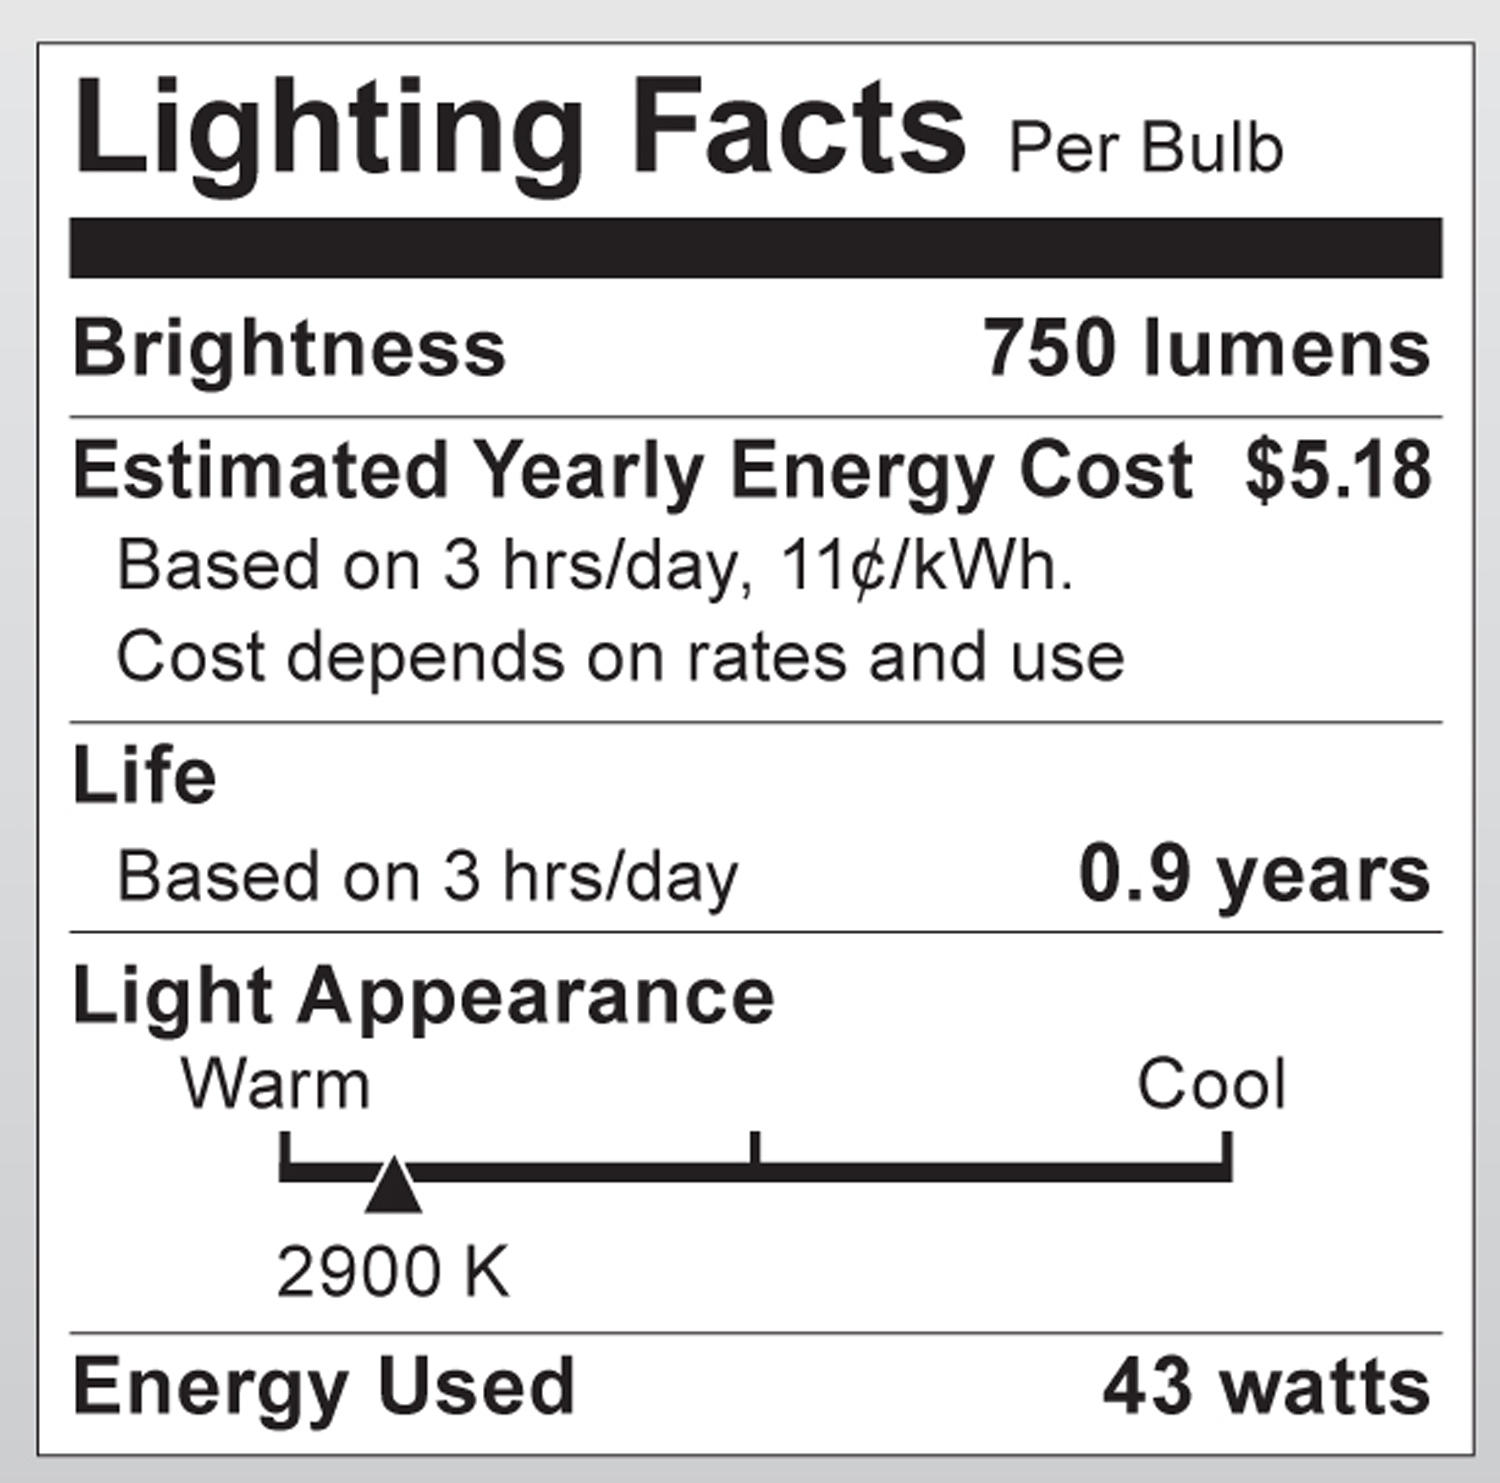 S2402 Lighting Fact Label